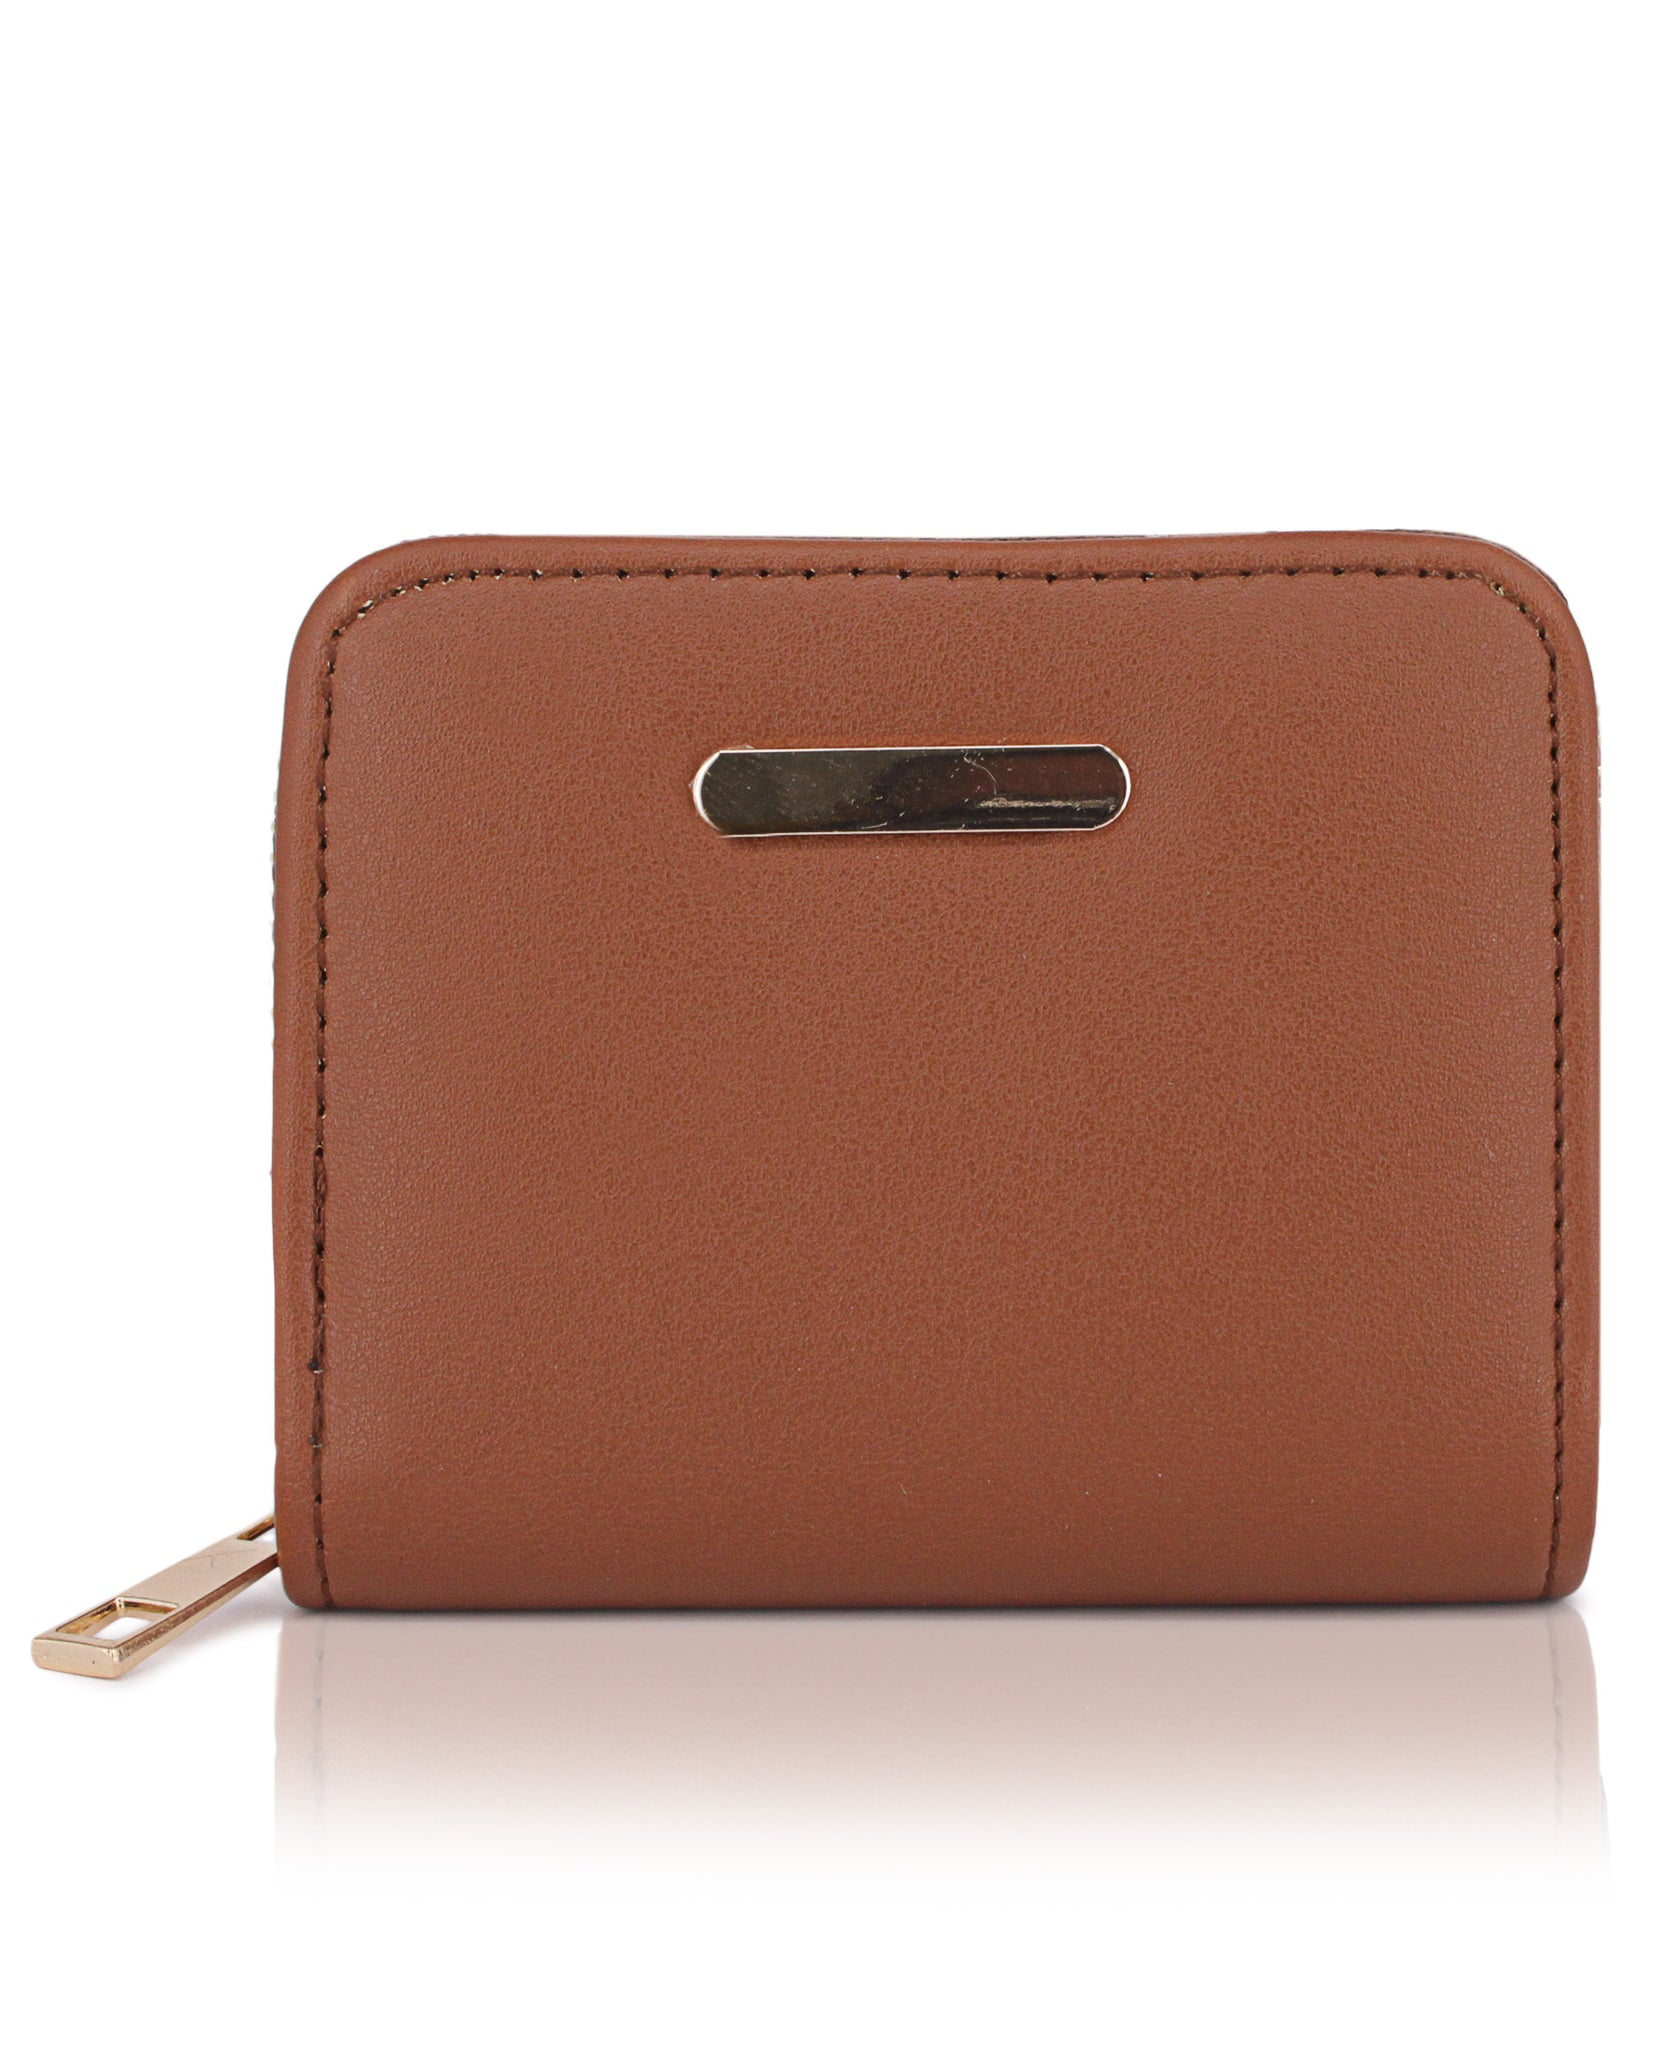 Zipper Wallet - Tan